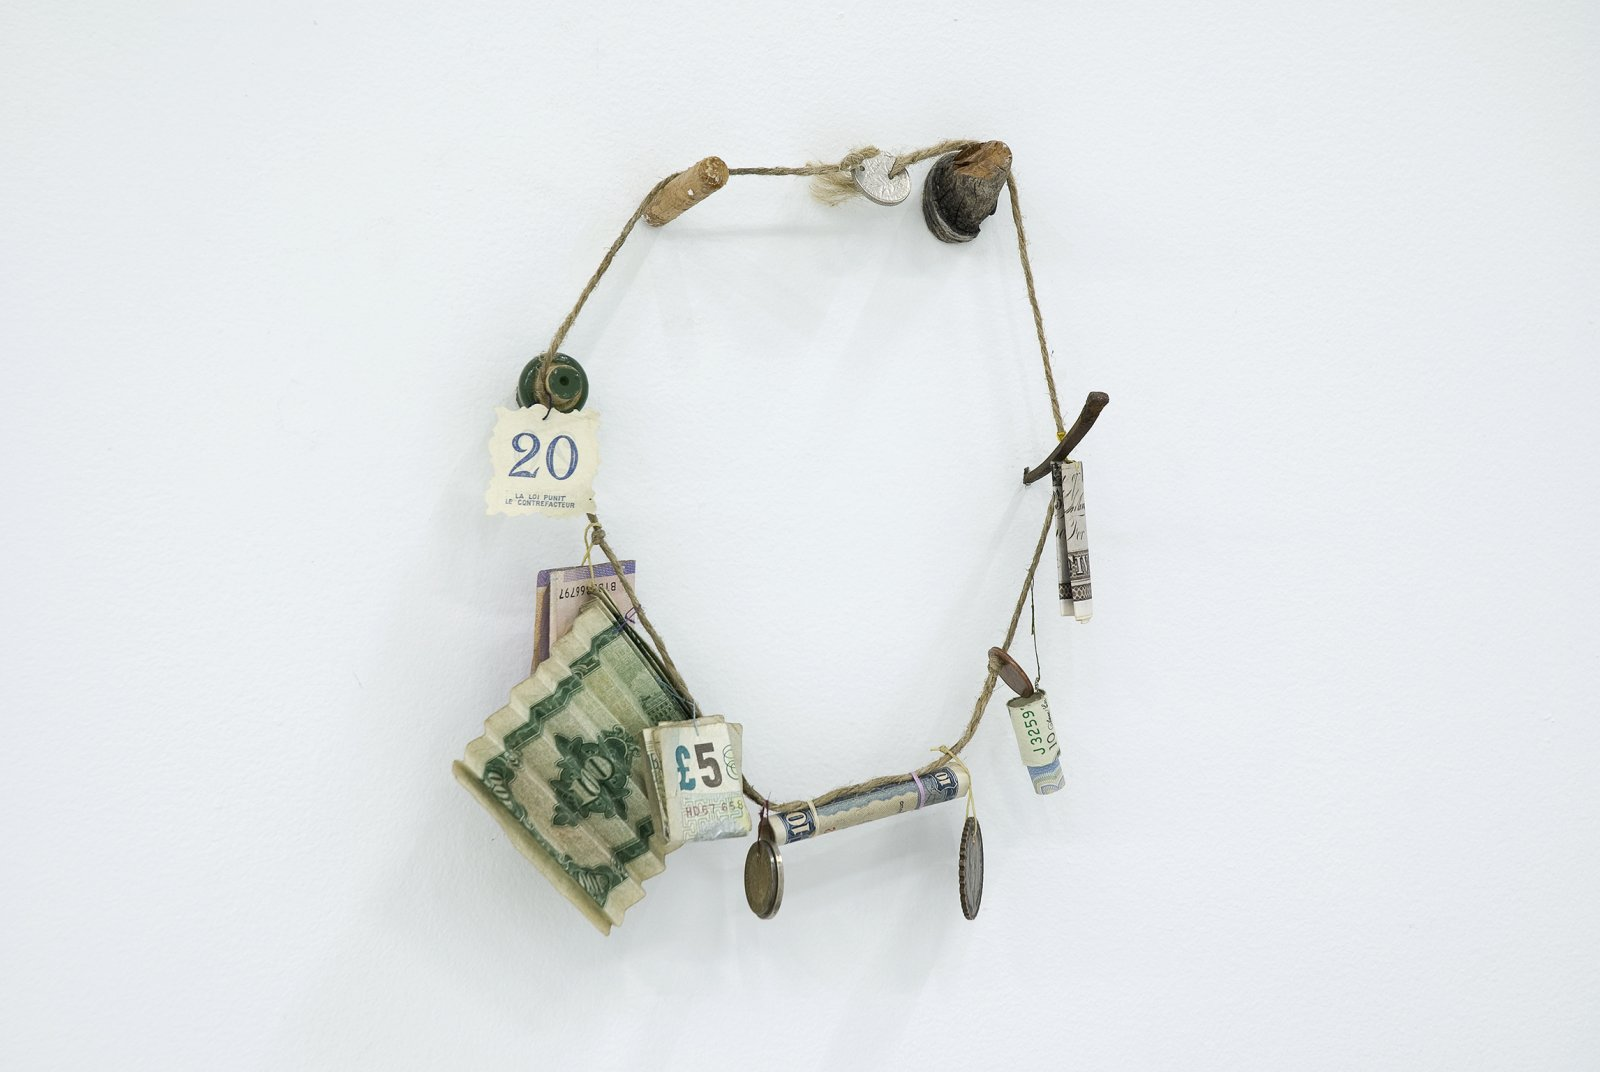 Gareth Moore, Necklace from Uncertain Pilgrimage, 2006-2009, string, thread, found wood, nail, various past and present currencies, 9  x 8 x 2 in. (24 x 20 x 6 cm) by Ashes Withyman